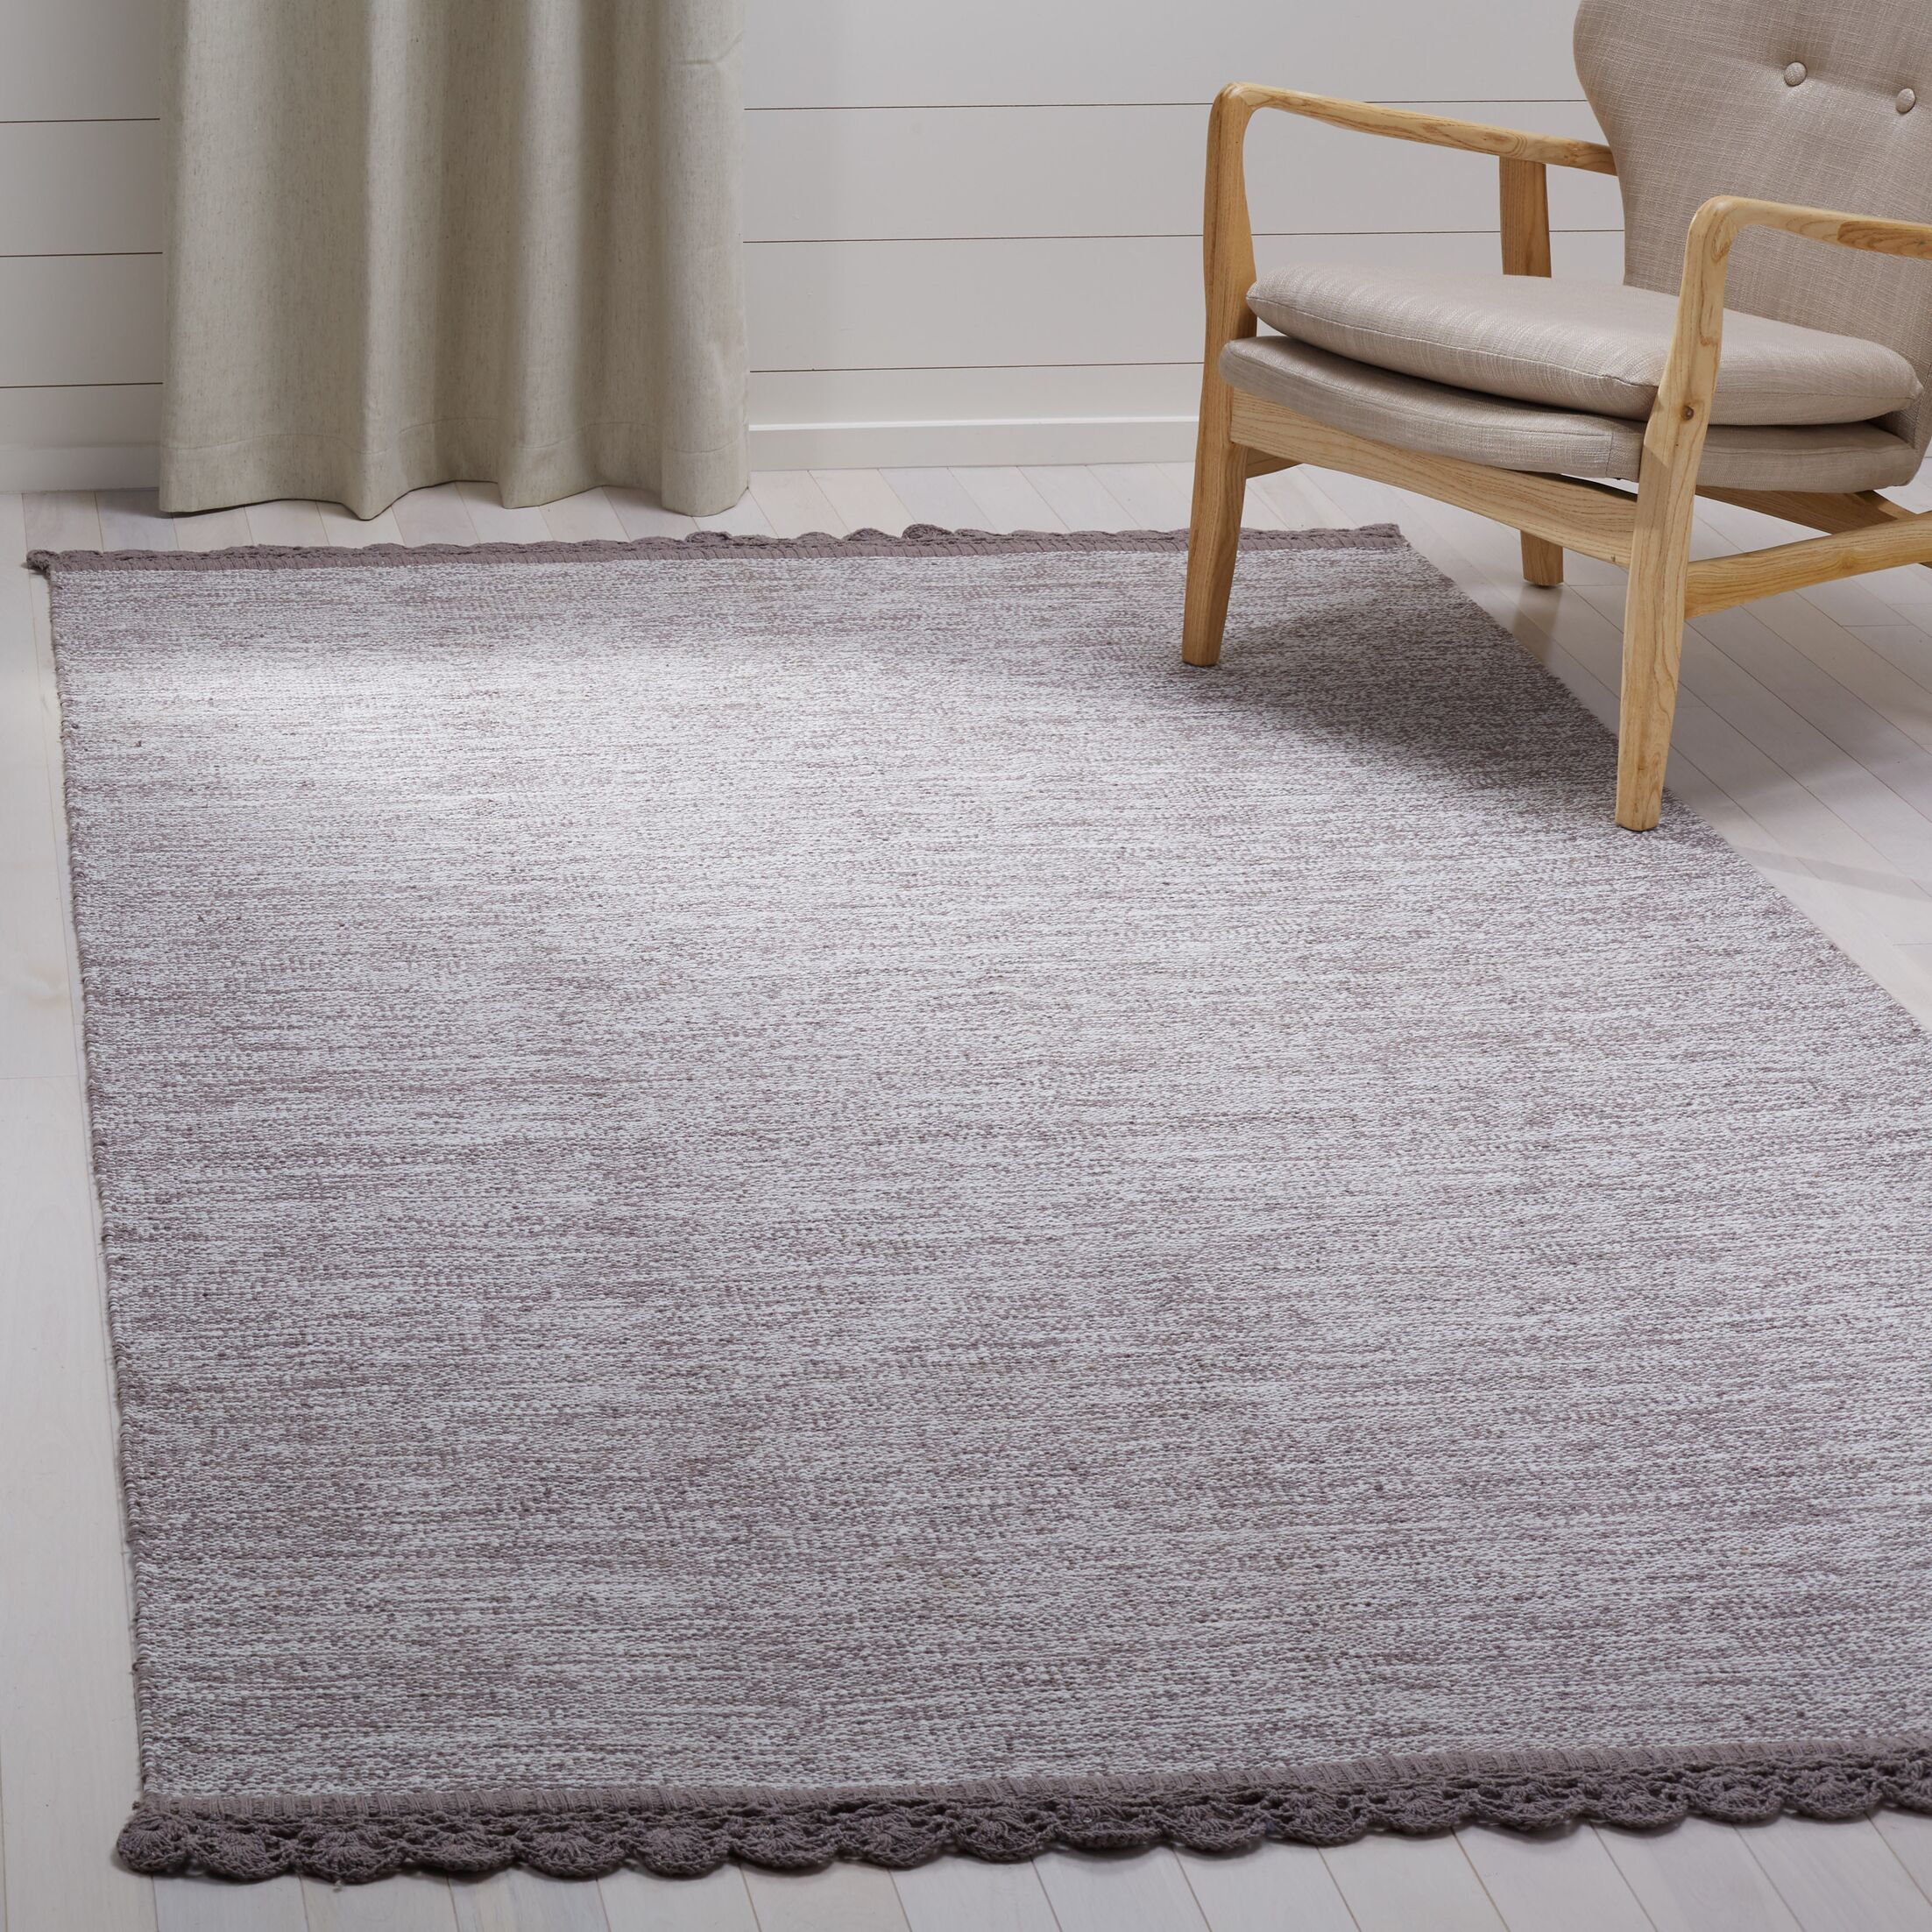 Mohnton Hand-Woven Gray Area Rug Rug Size: Rectangle 5' x 8'